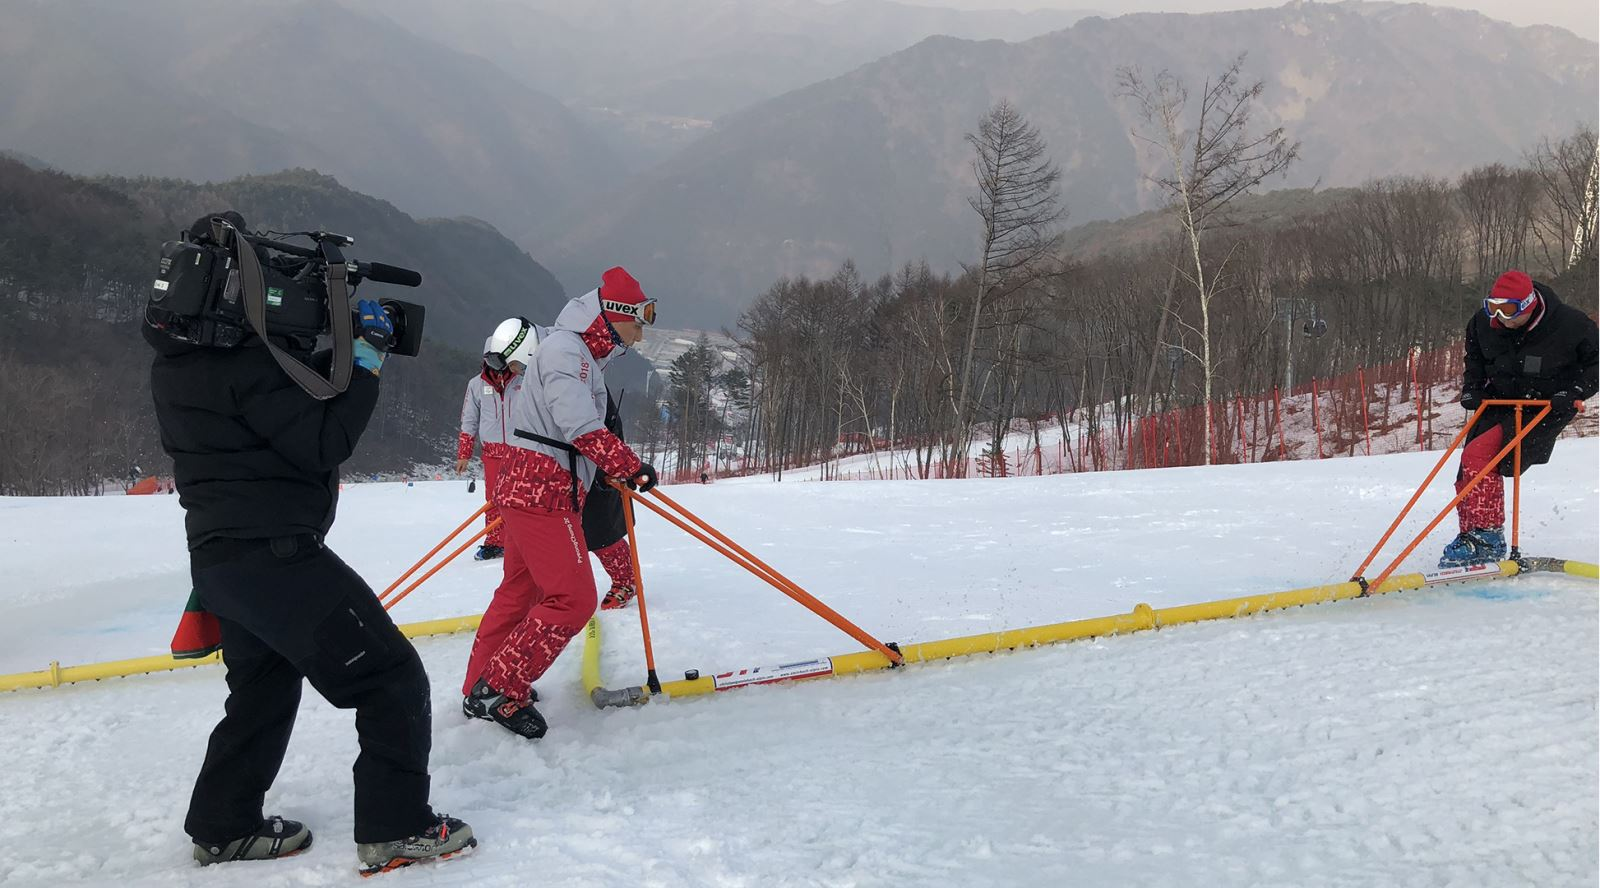 Filming the injection process on the Men's Super G course